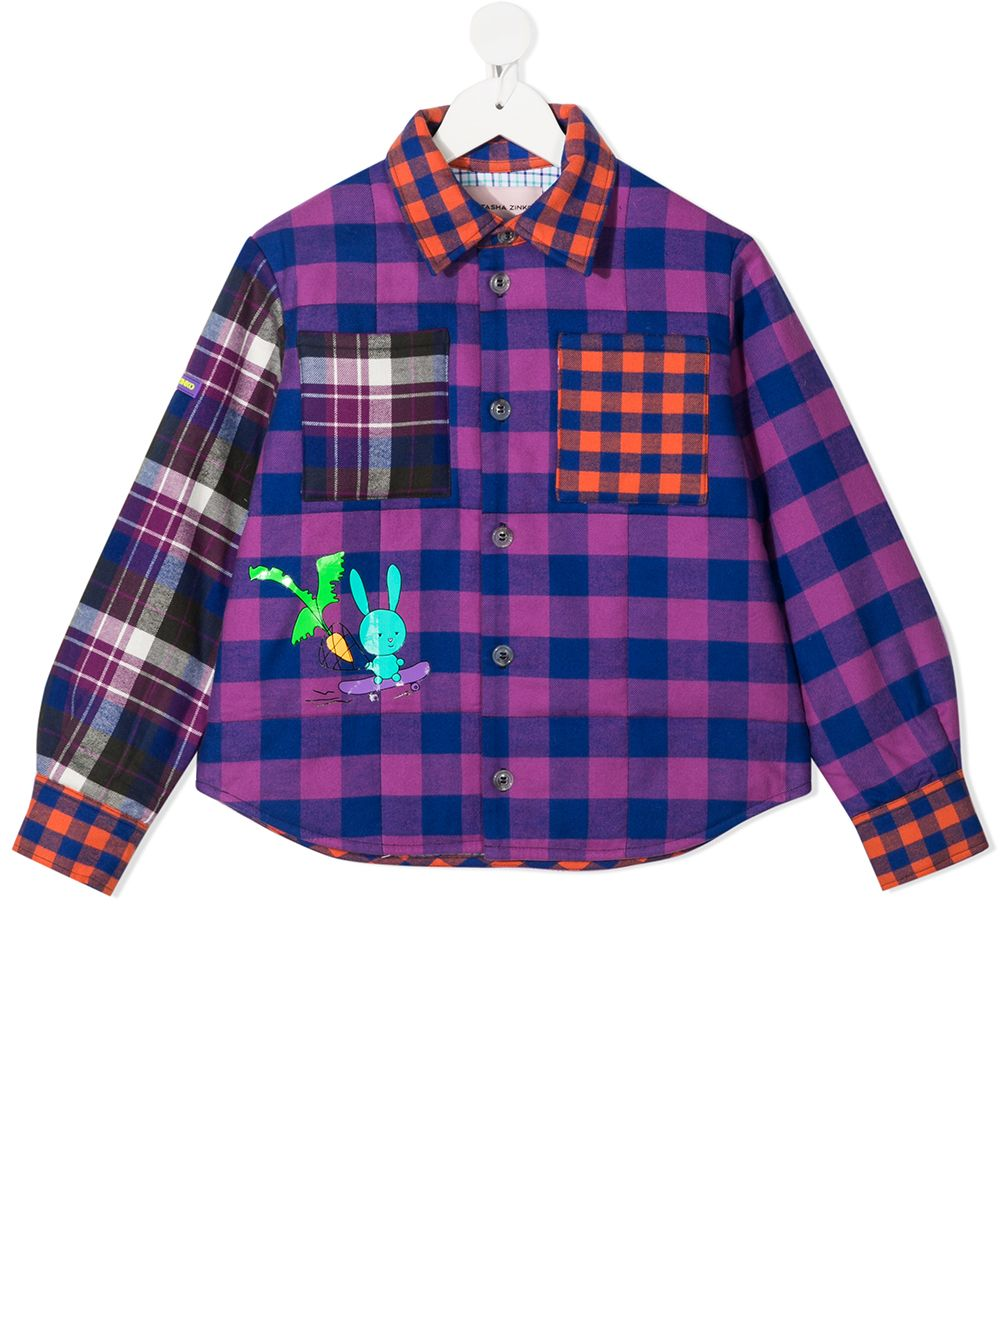 Natasha Zinko Kids plaid check shirt - Purple von Natasha Zinko Kids